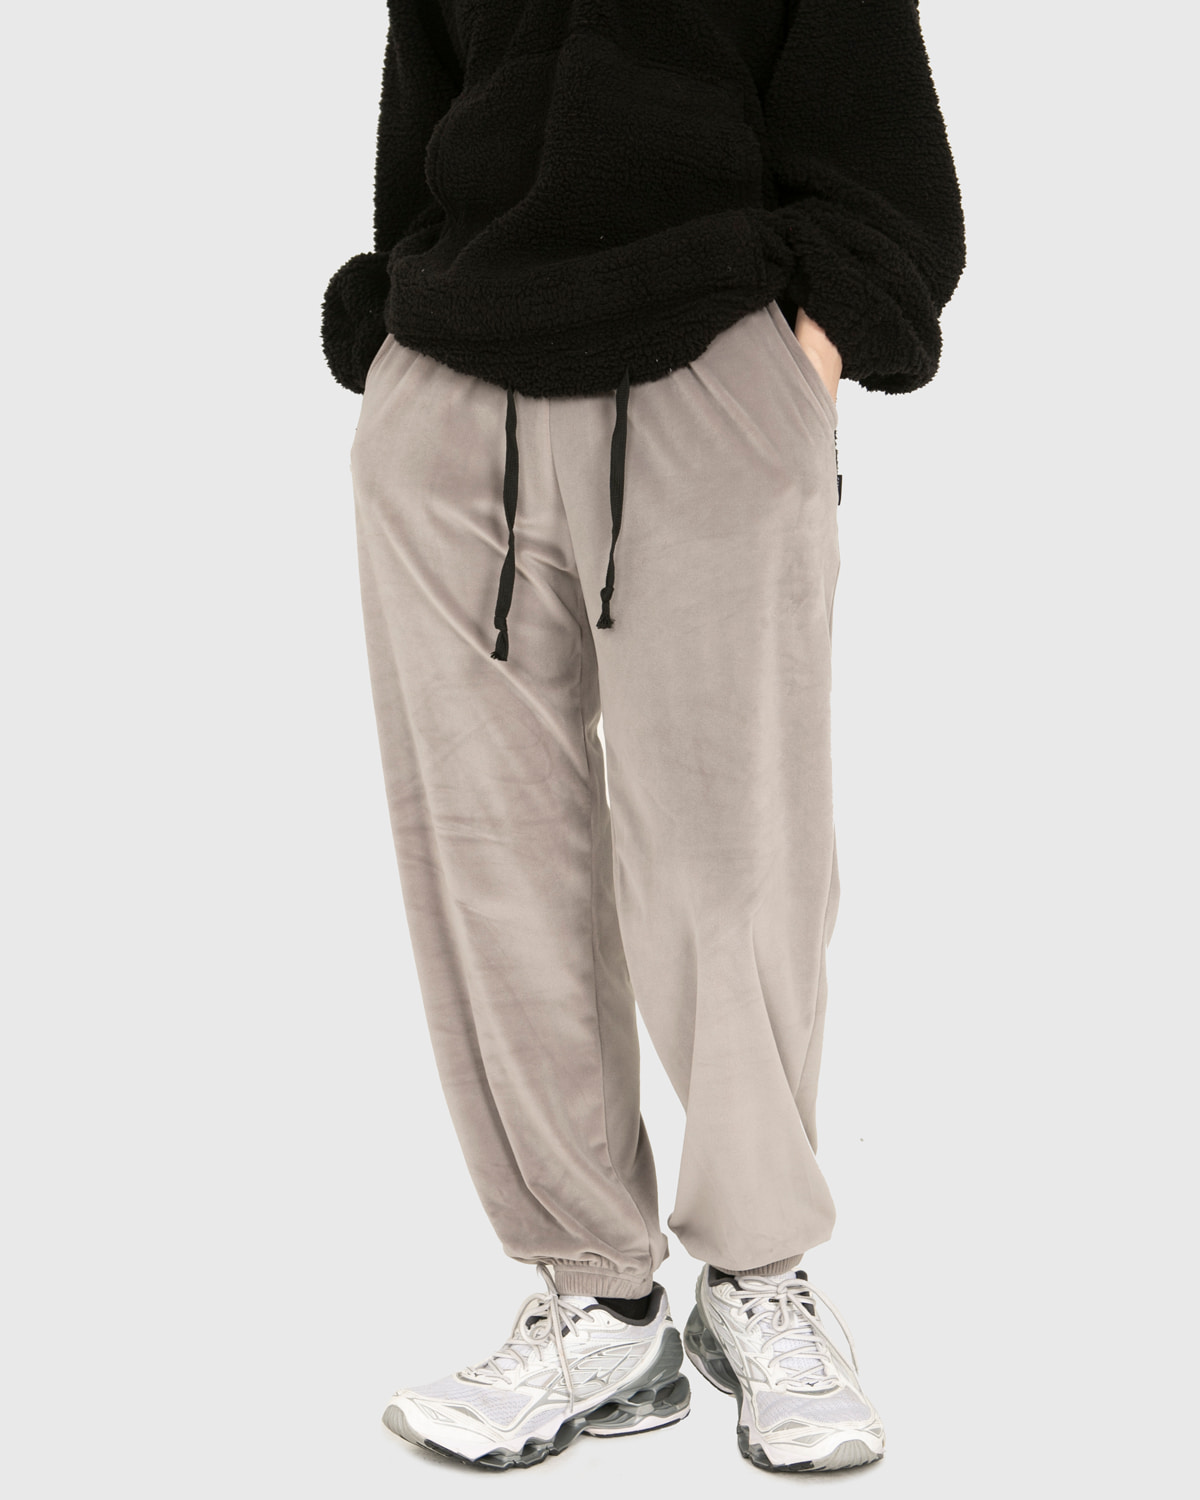 raucohouse-SOFT VELOUR JOGGER PANTS - RAUCO HOUSE♡韓國男裝褲子